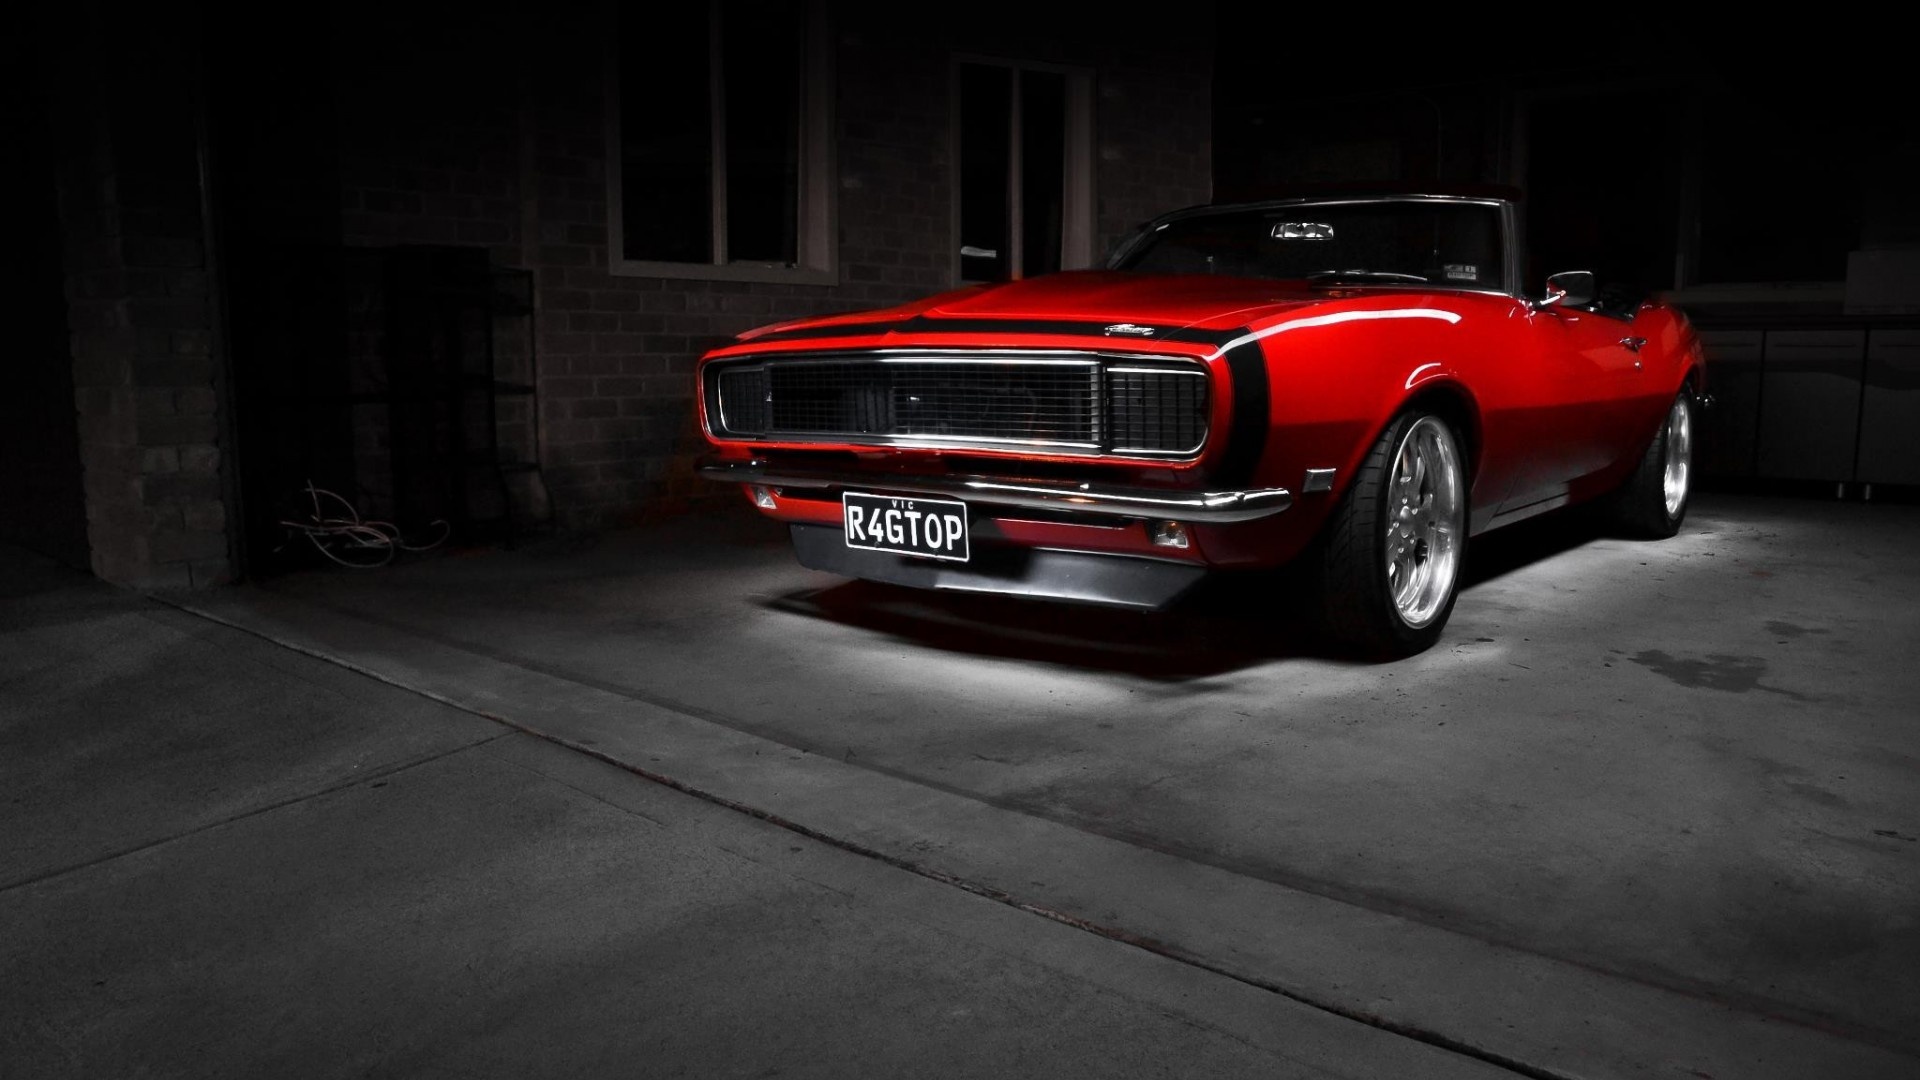 Muscle Car wallpaper 1920x1080 48132 1920x1080